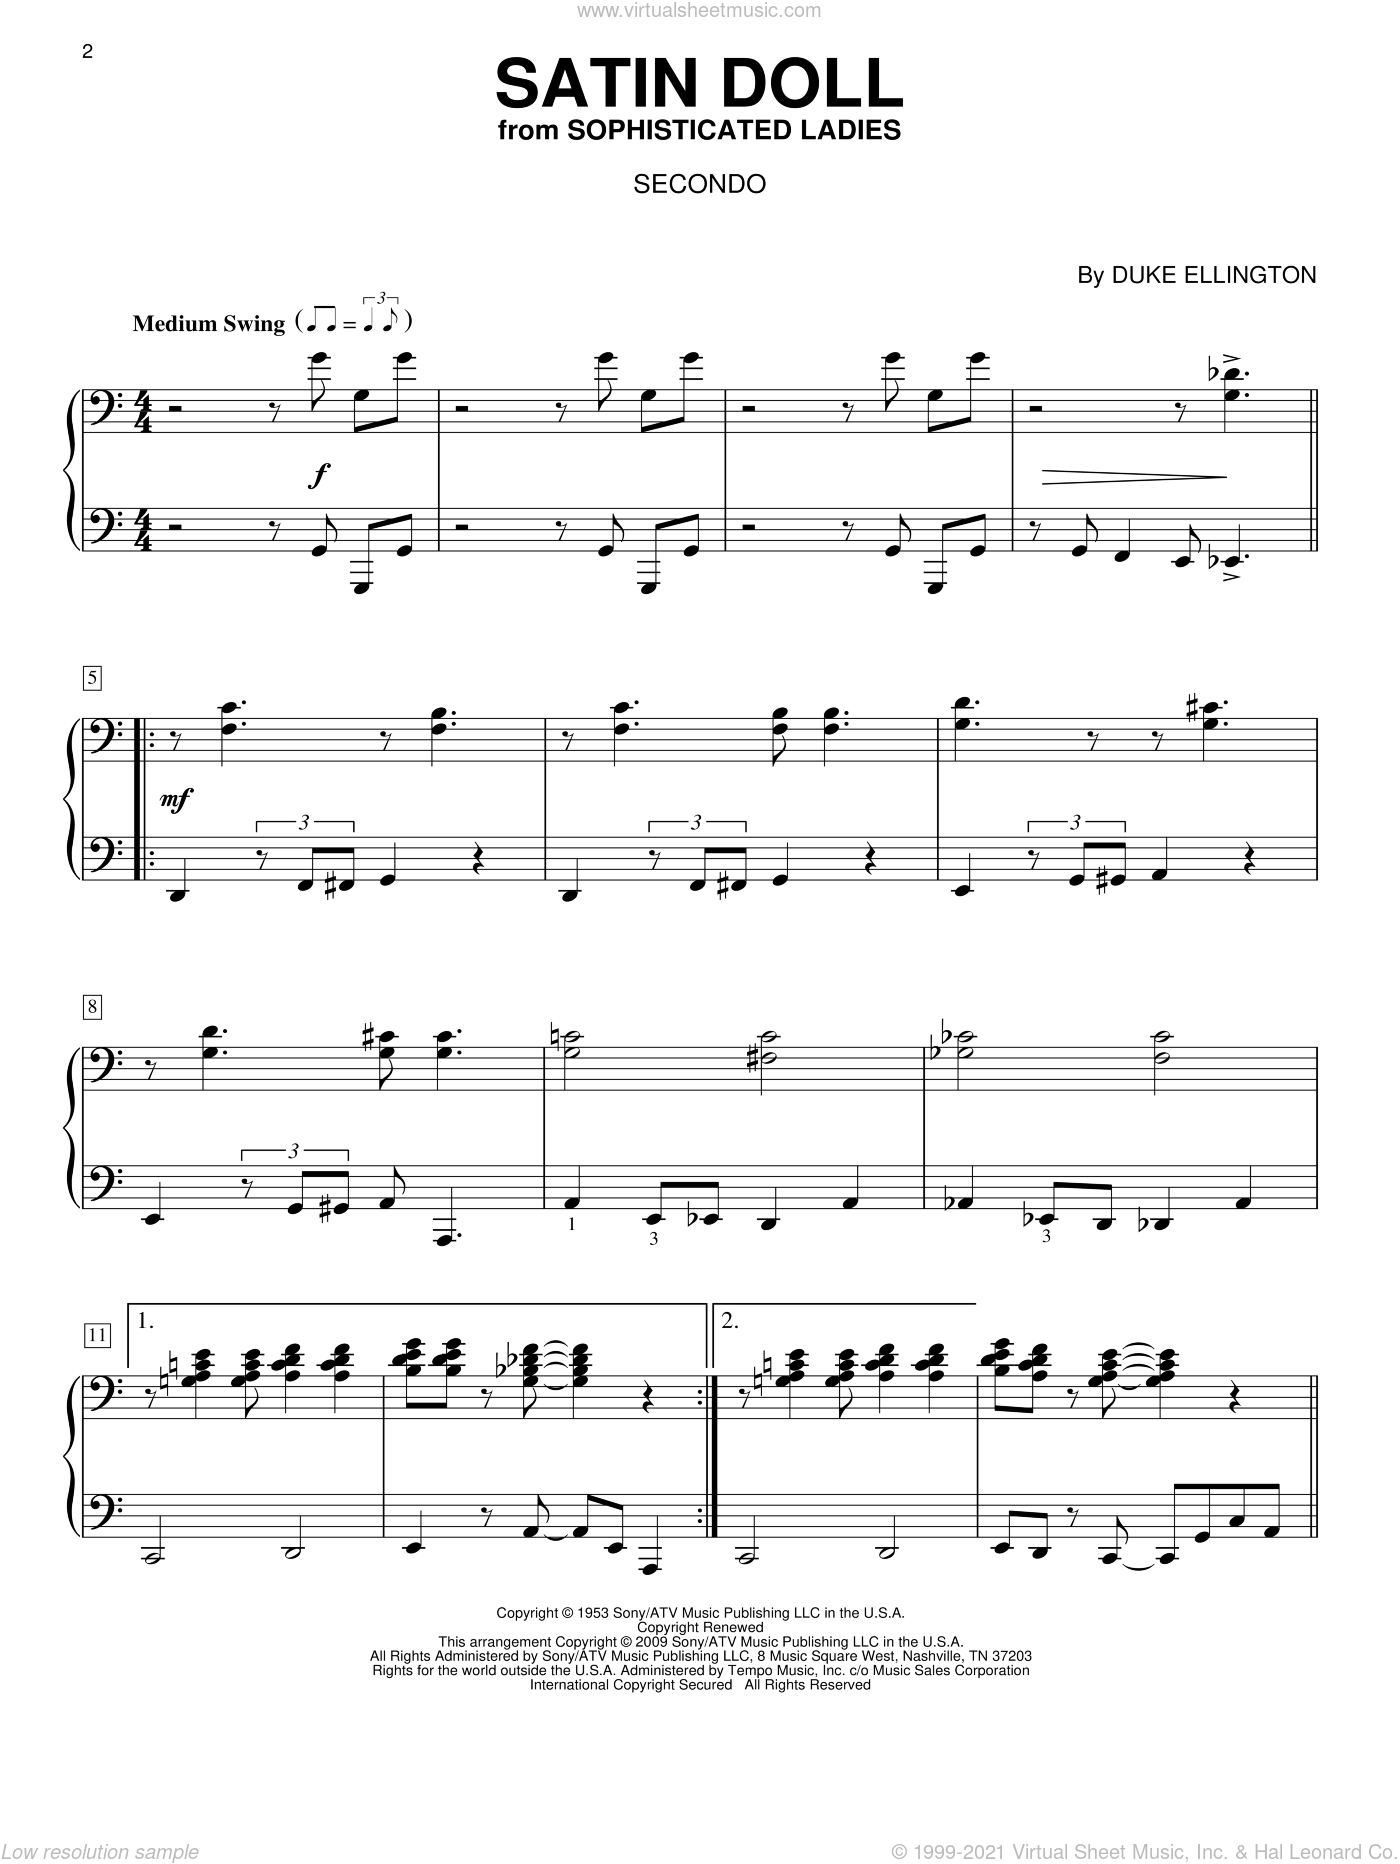 Satin Doll sheet music for piano four hands (duets) by Duke Ellington